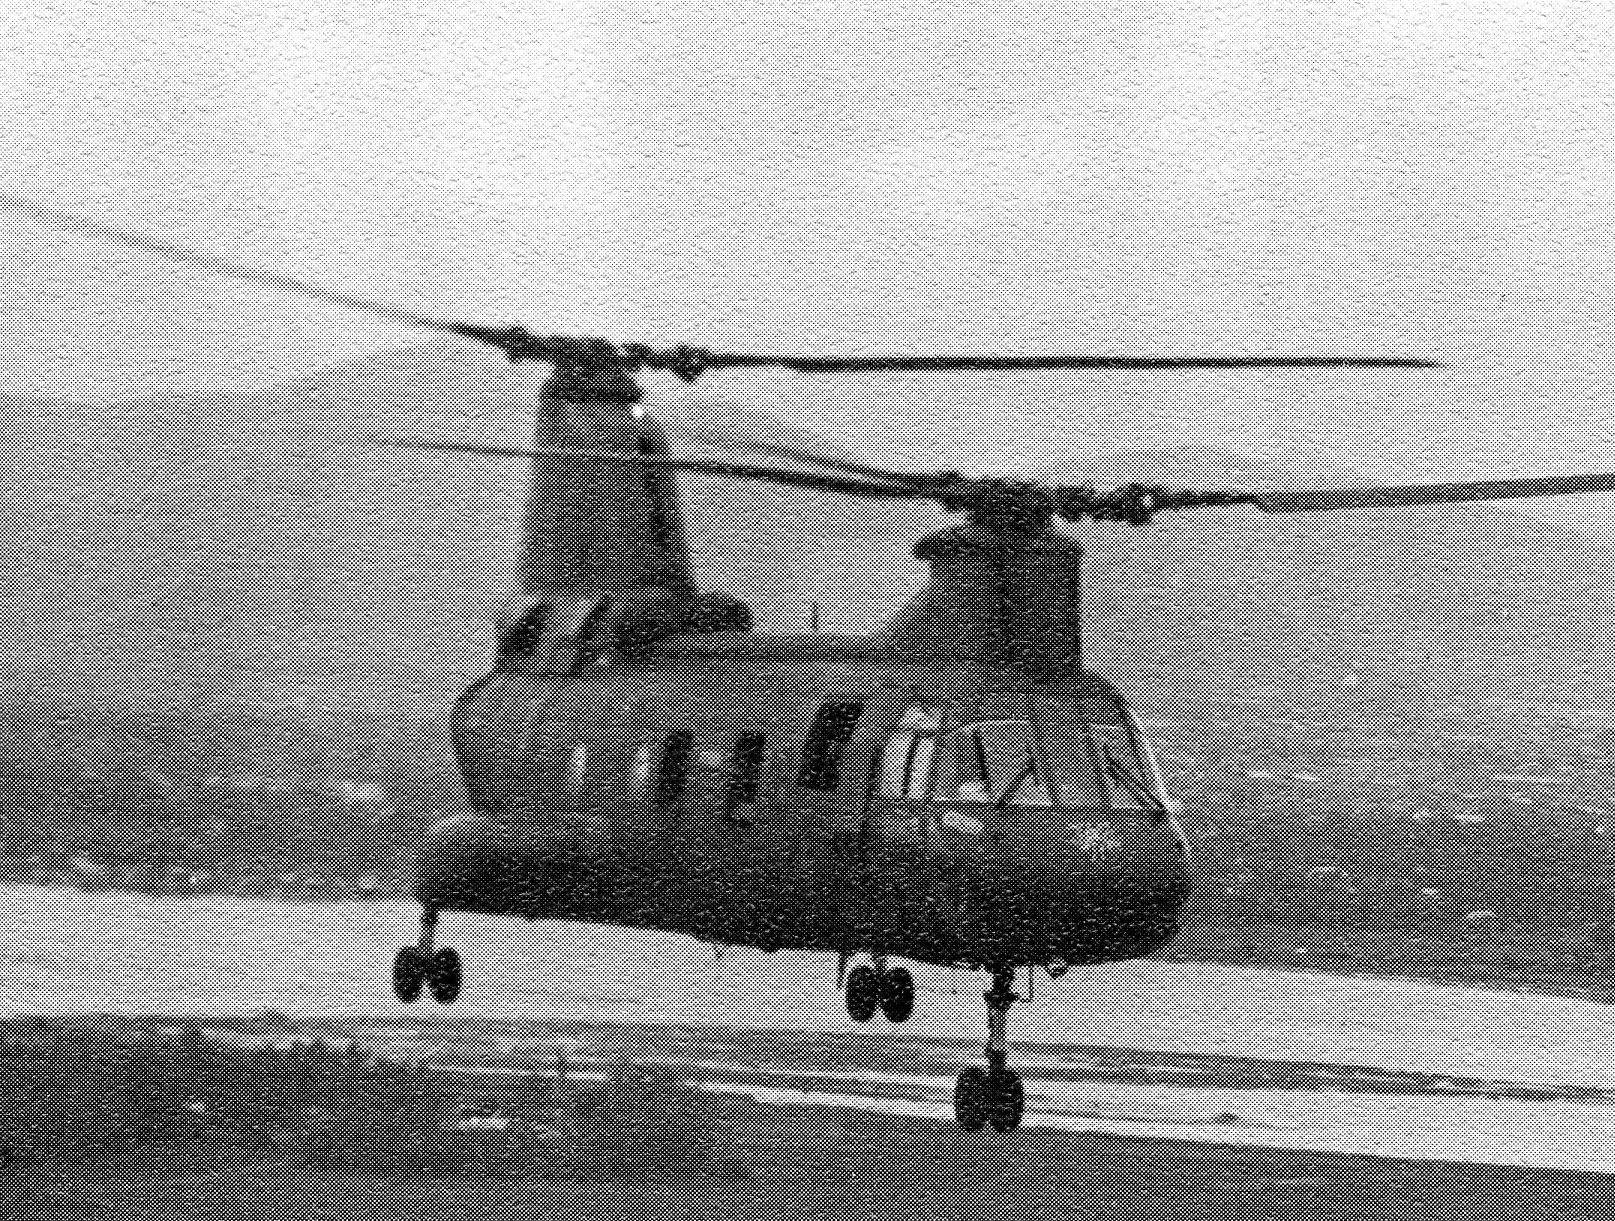 A workhorse during the Vietnam War, this CH-46 Sea Knight helicopter was piloted by Harold Walker, who took notes during his year in Vietnam. Now, the 72-year-old Geneva veteran has turned those notes into a book.